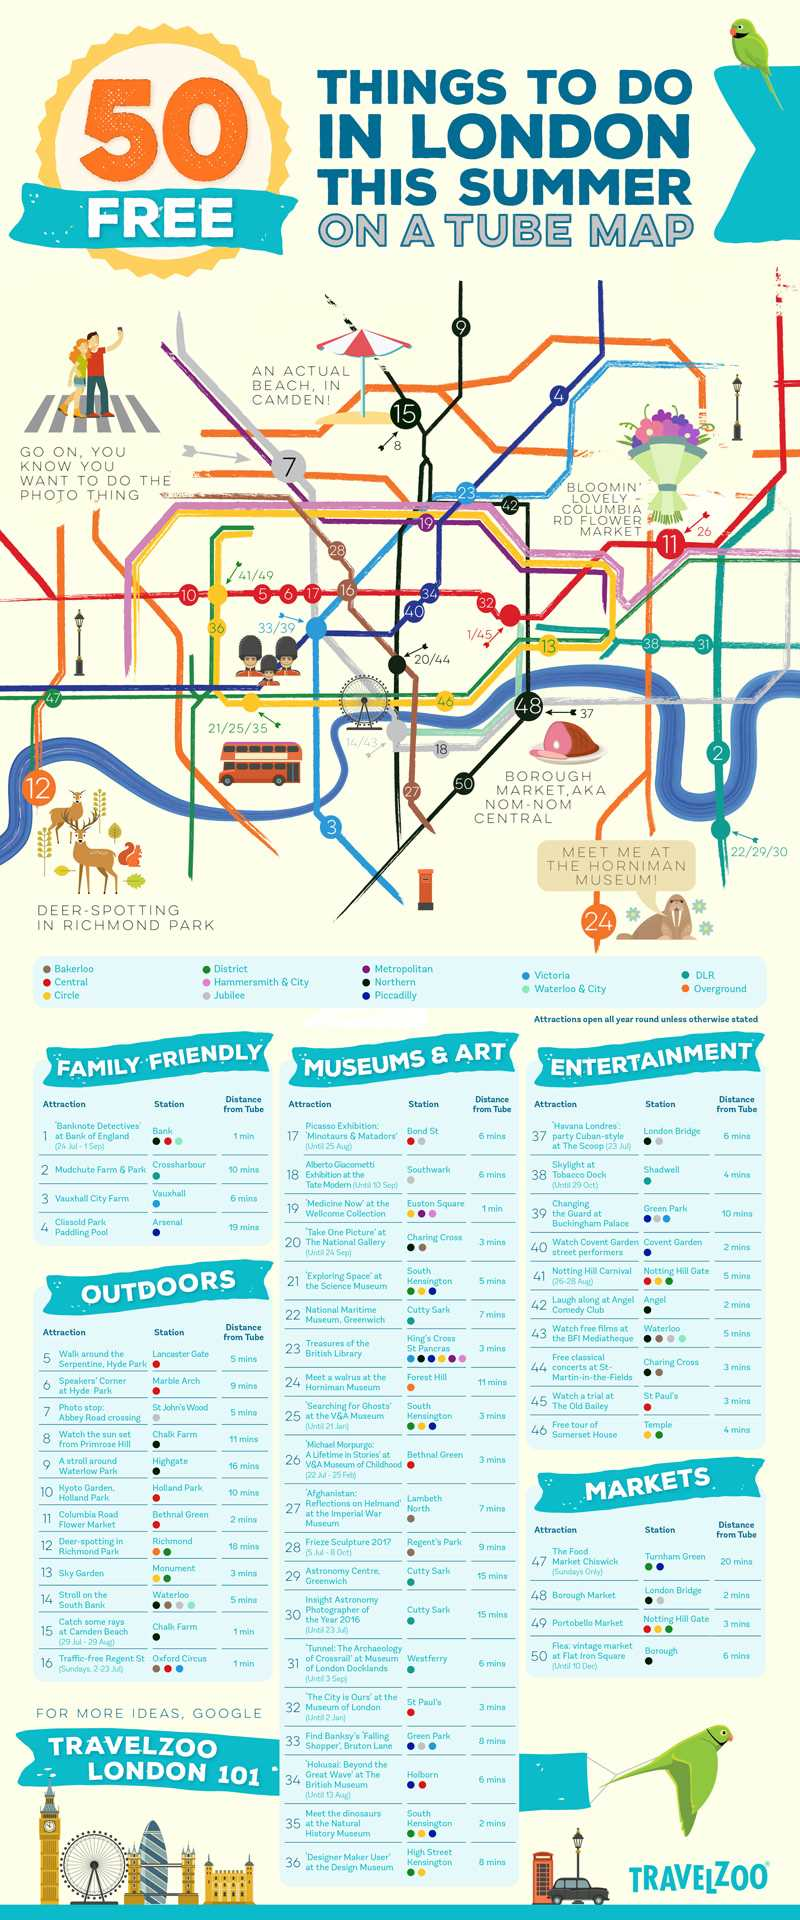 London Free Map.50 Free Things To Do In London This Summer On A Tube Map Travelzoo